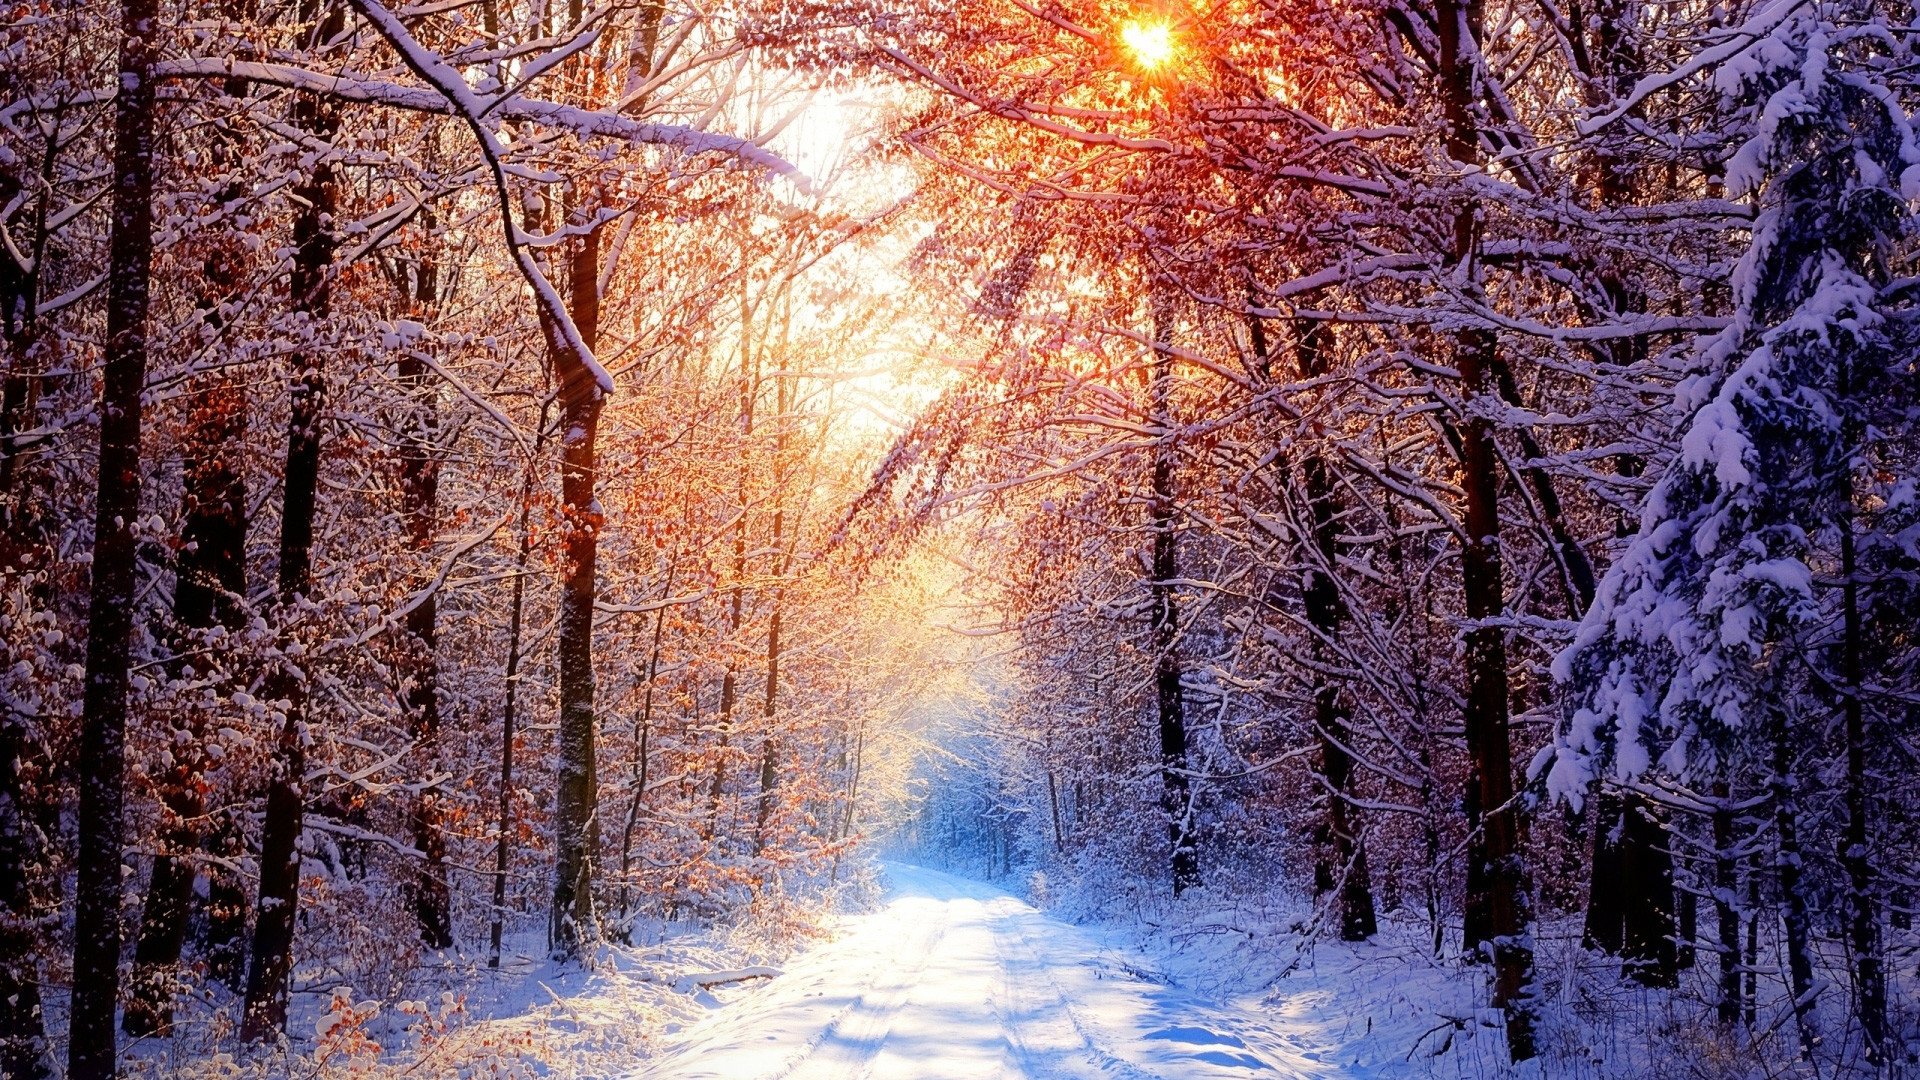 1080p winter wallpaper 65 images for Full hd 1080p wallpapers